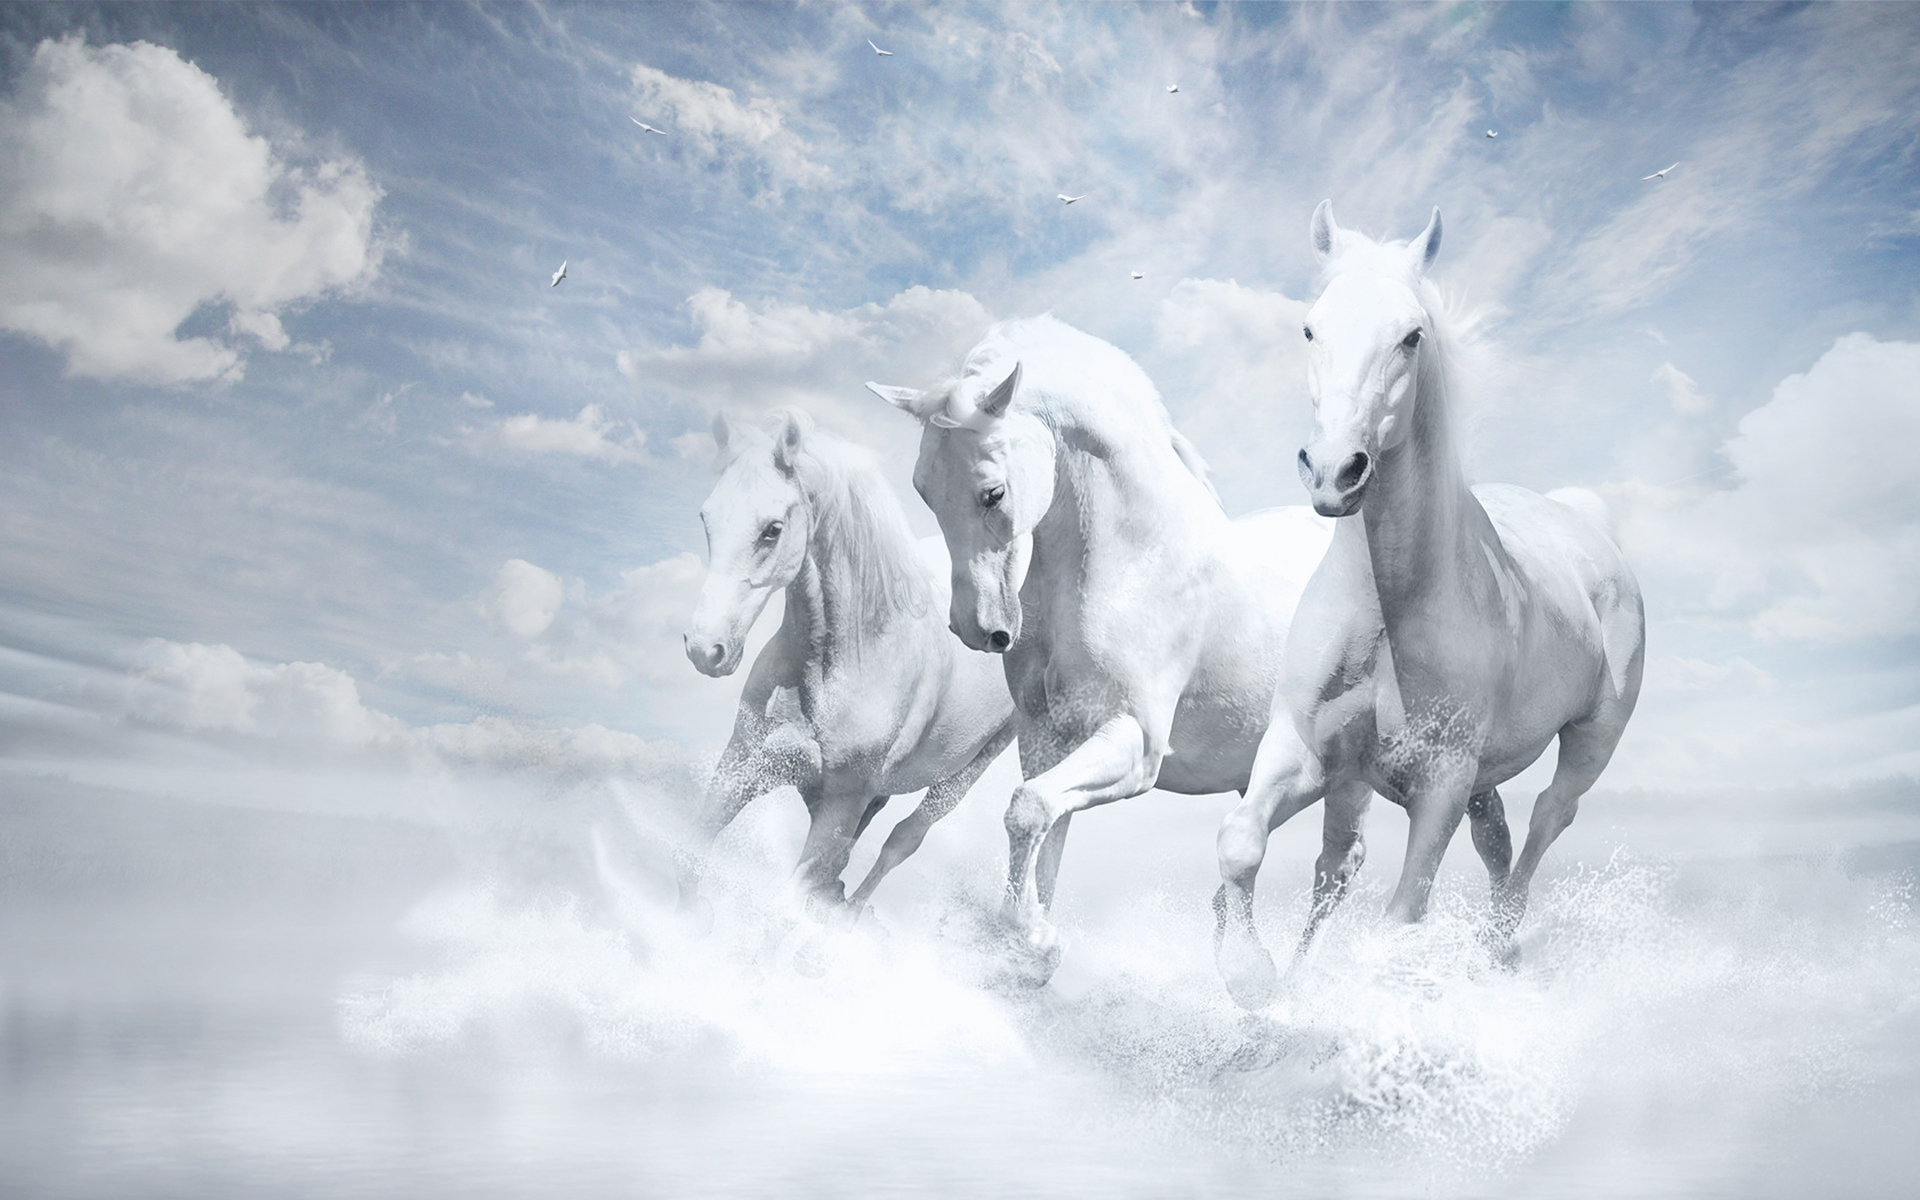 Horses 4k Wallpapers For Your Desktop Or Mobile Screen Free And